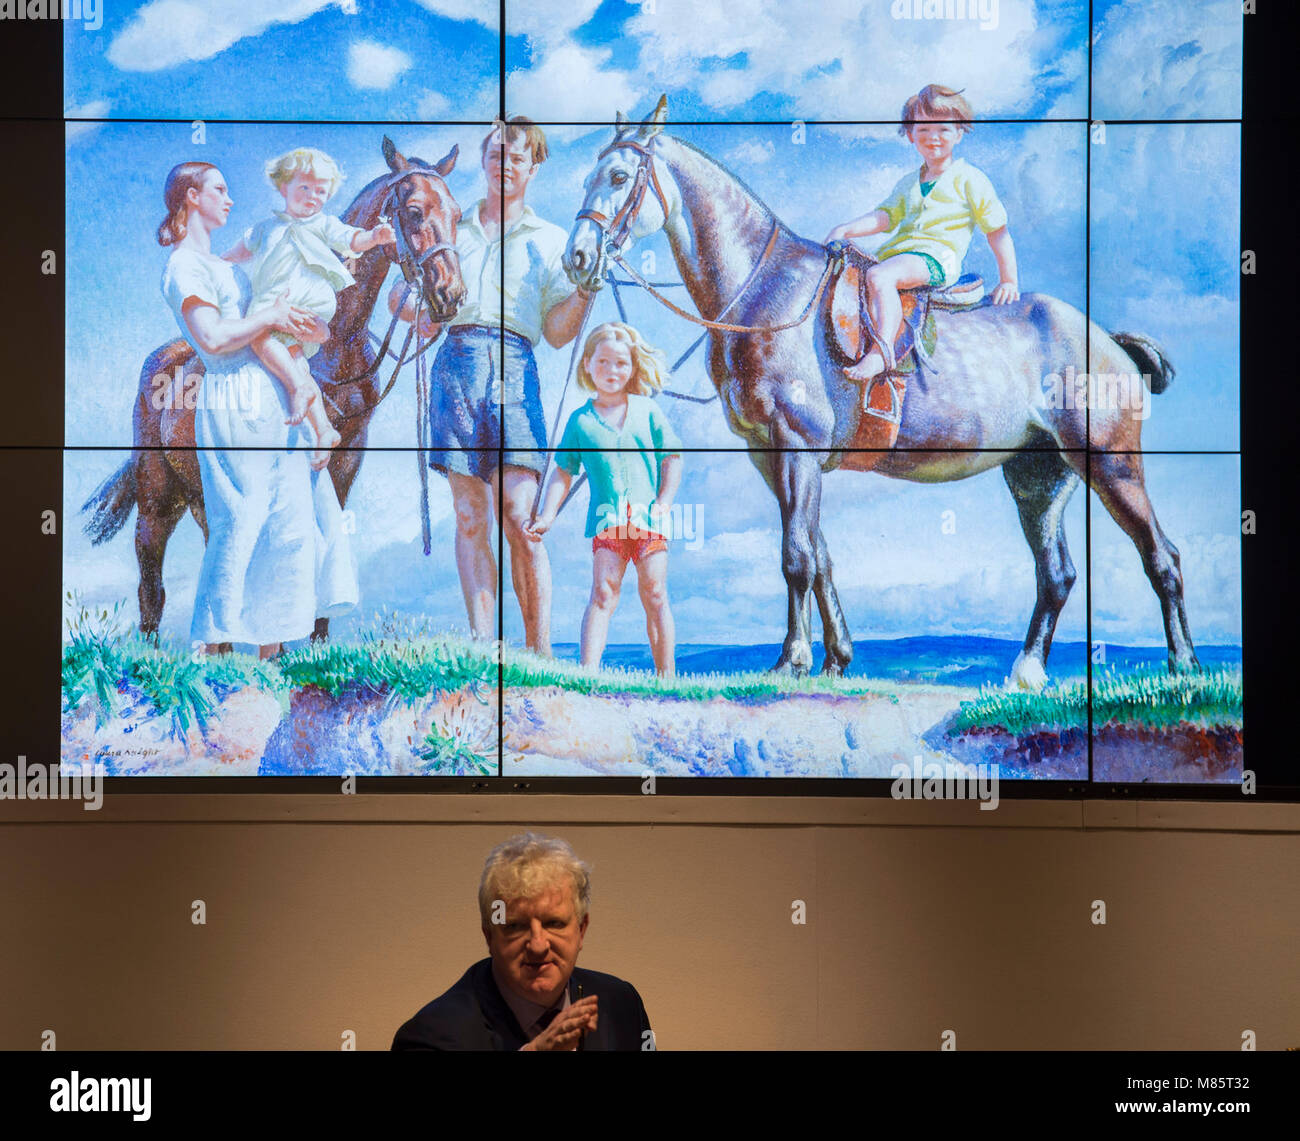 Bonhams, New Bond Street, London, UK. 14 March 2018. Dame Laura Knight's A Seaside Holiday in the top 10 lots in - Stock Image